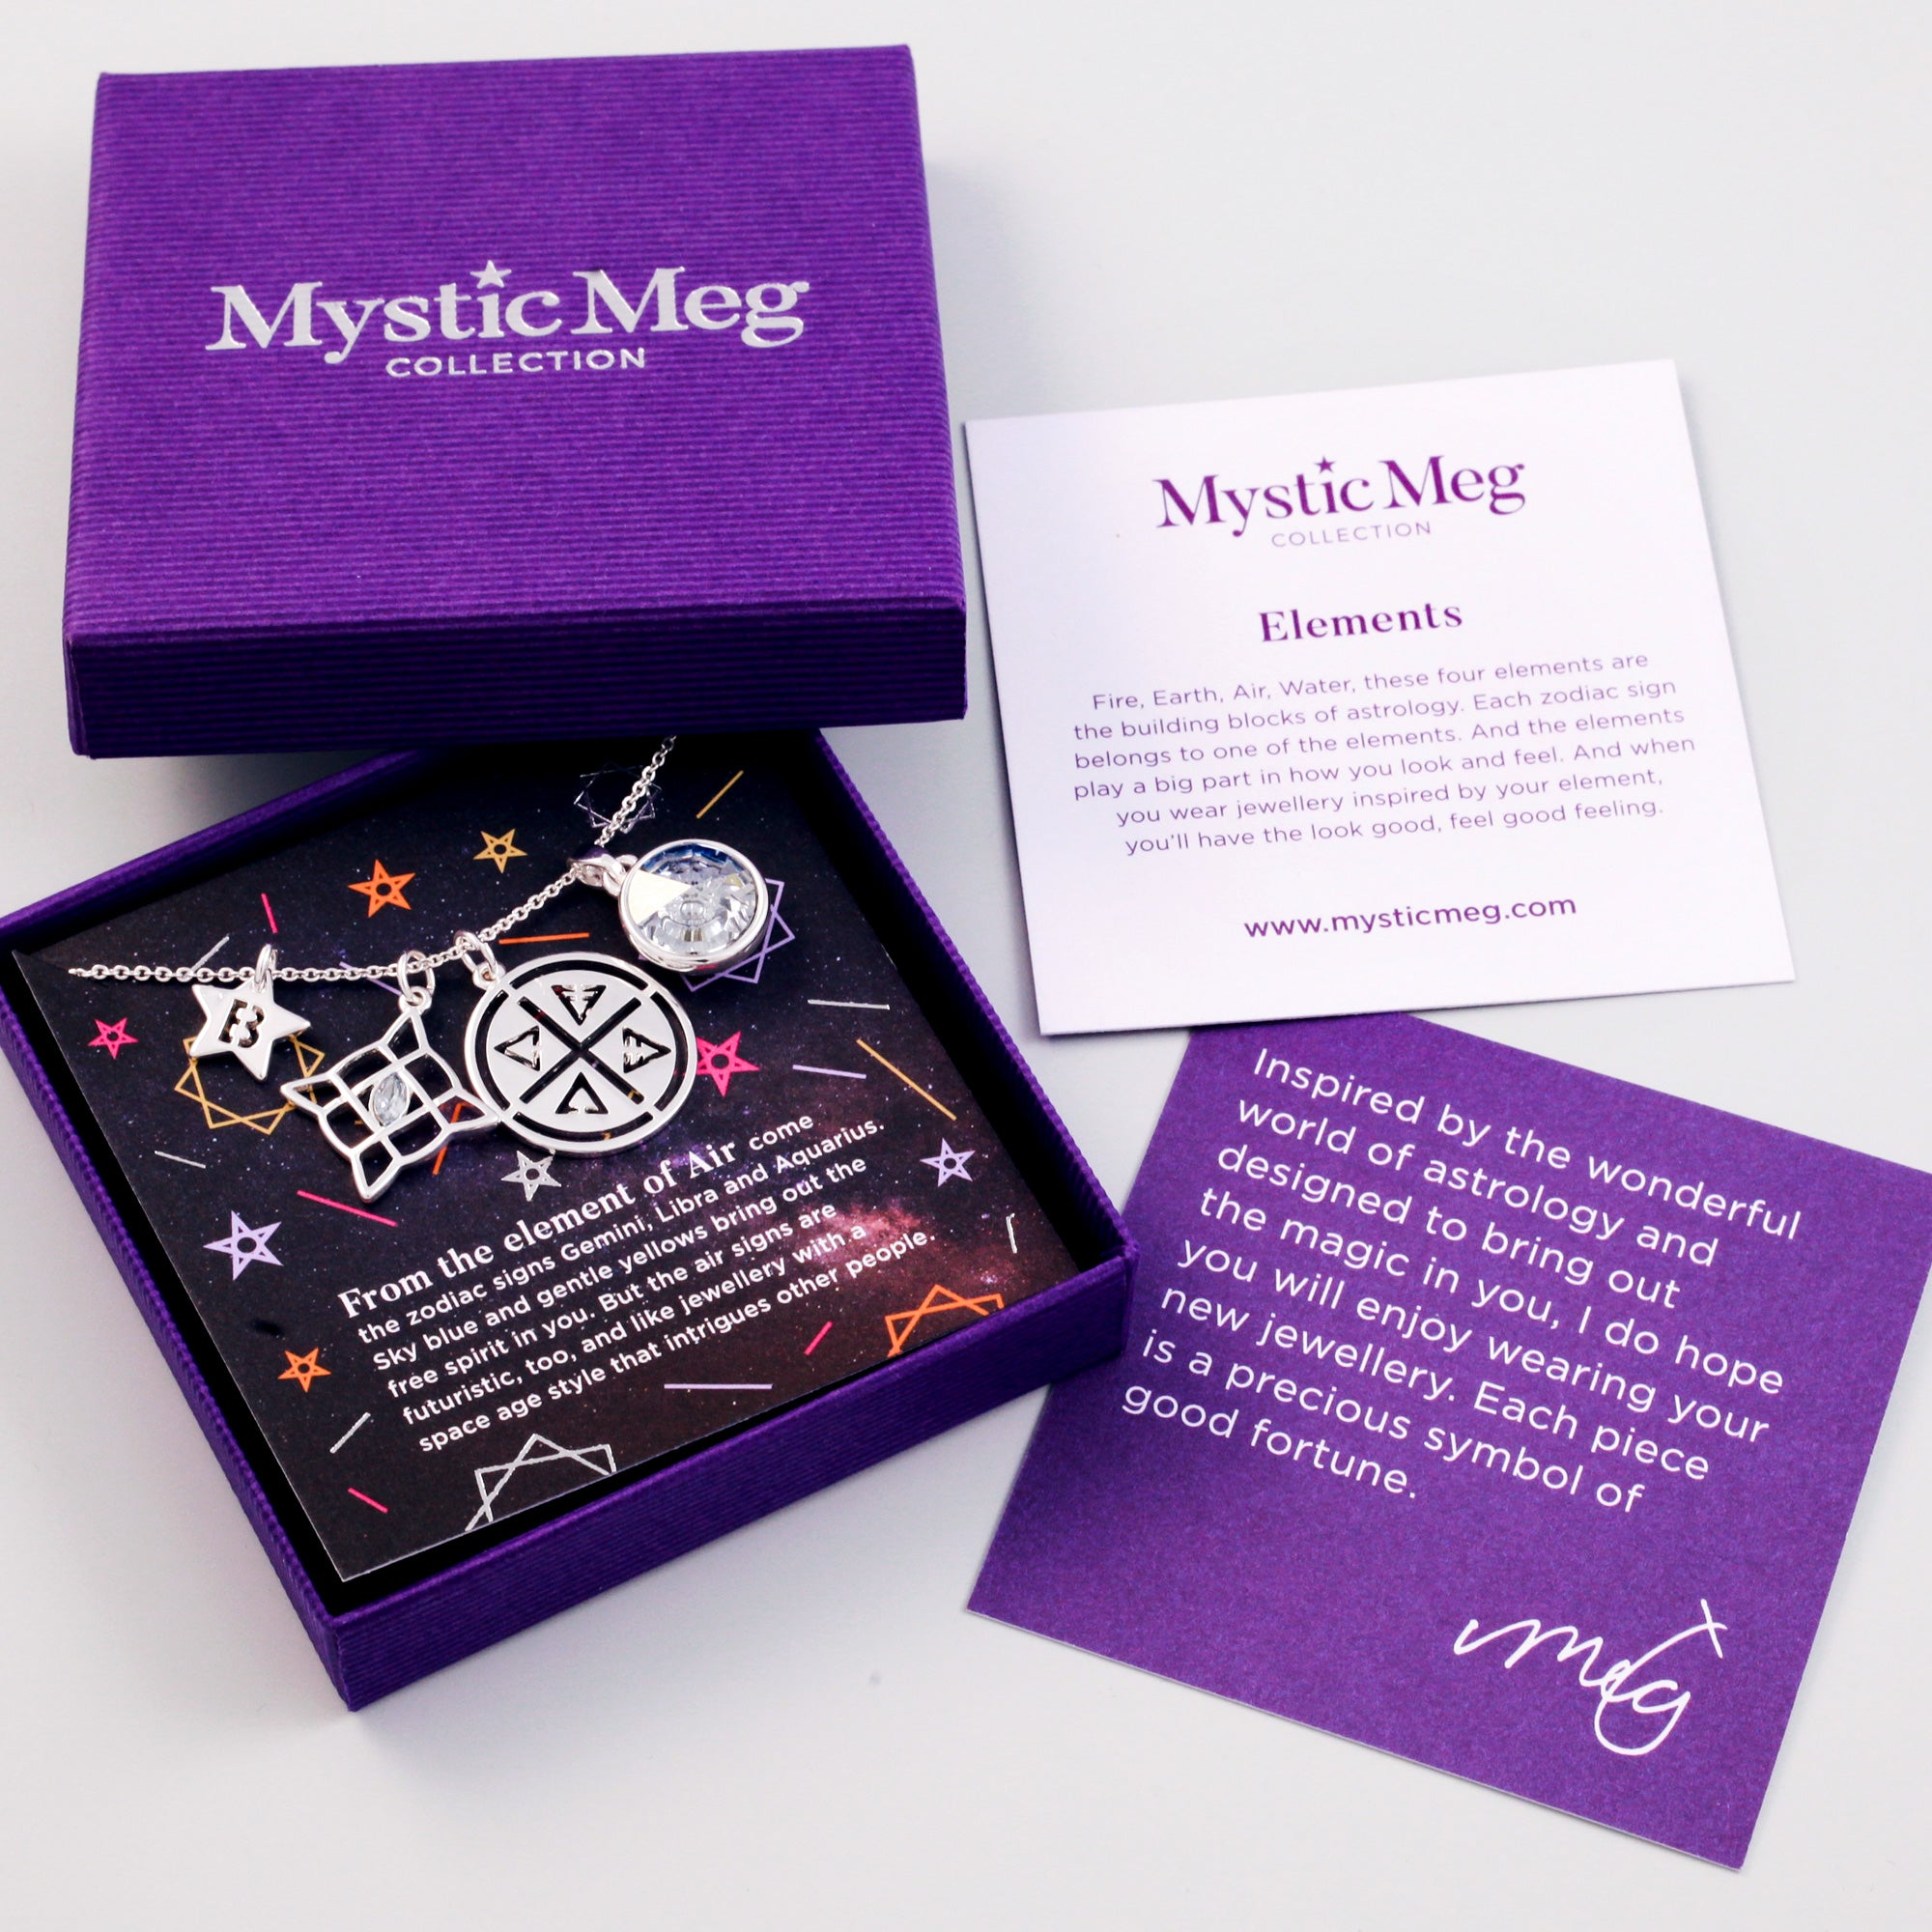 Four Elements Charm Necklace in Air - Mystic Meg Collection